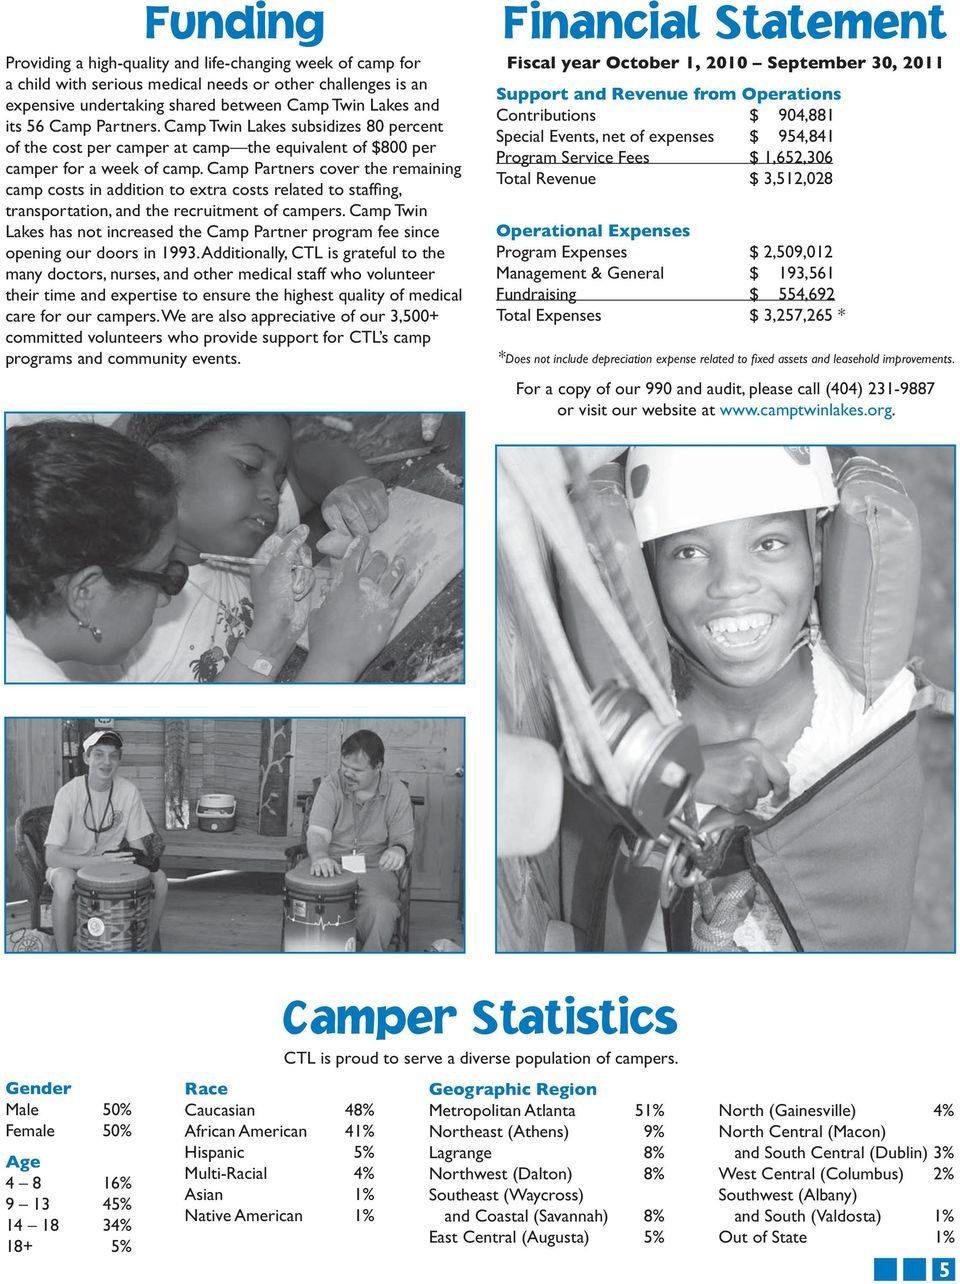 Camp Partners cover the remaining camp costs in addition to extra costs related to staffing, transportation, and the recruitment of campers.